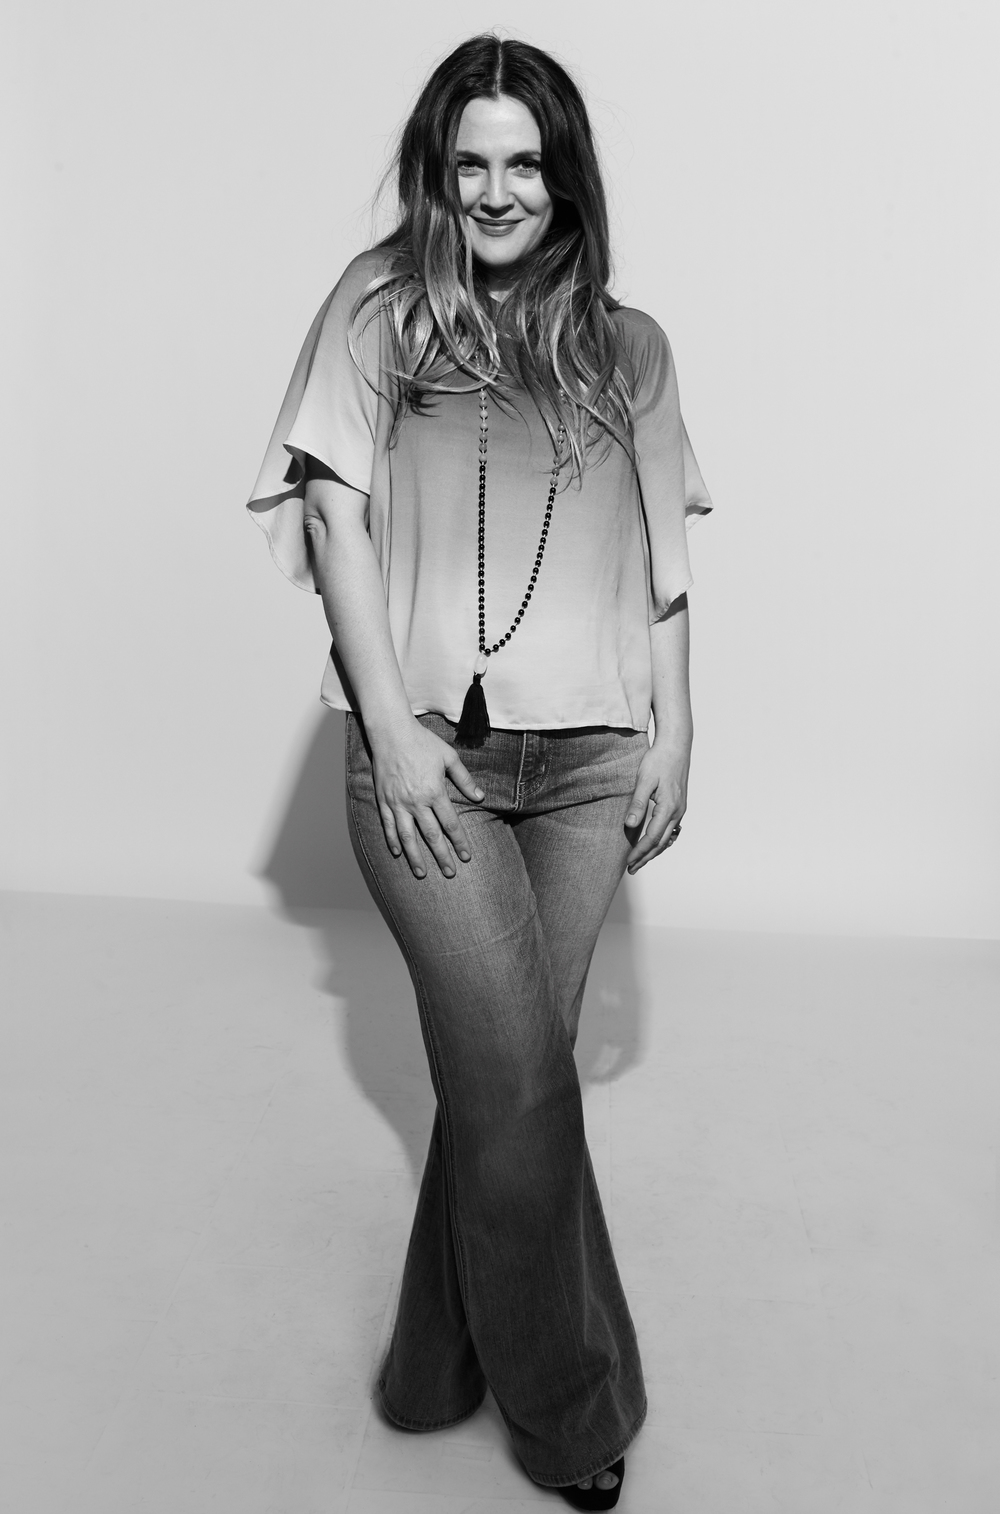 Drew Barrymore photographed by Kate Owen black and white portrait #powertrip